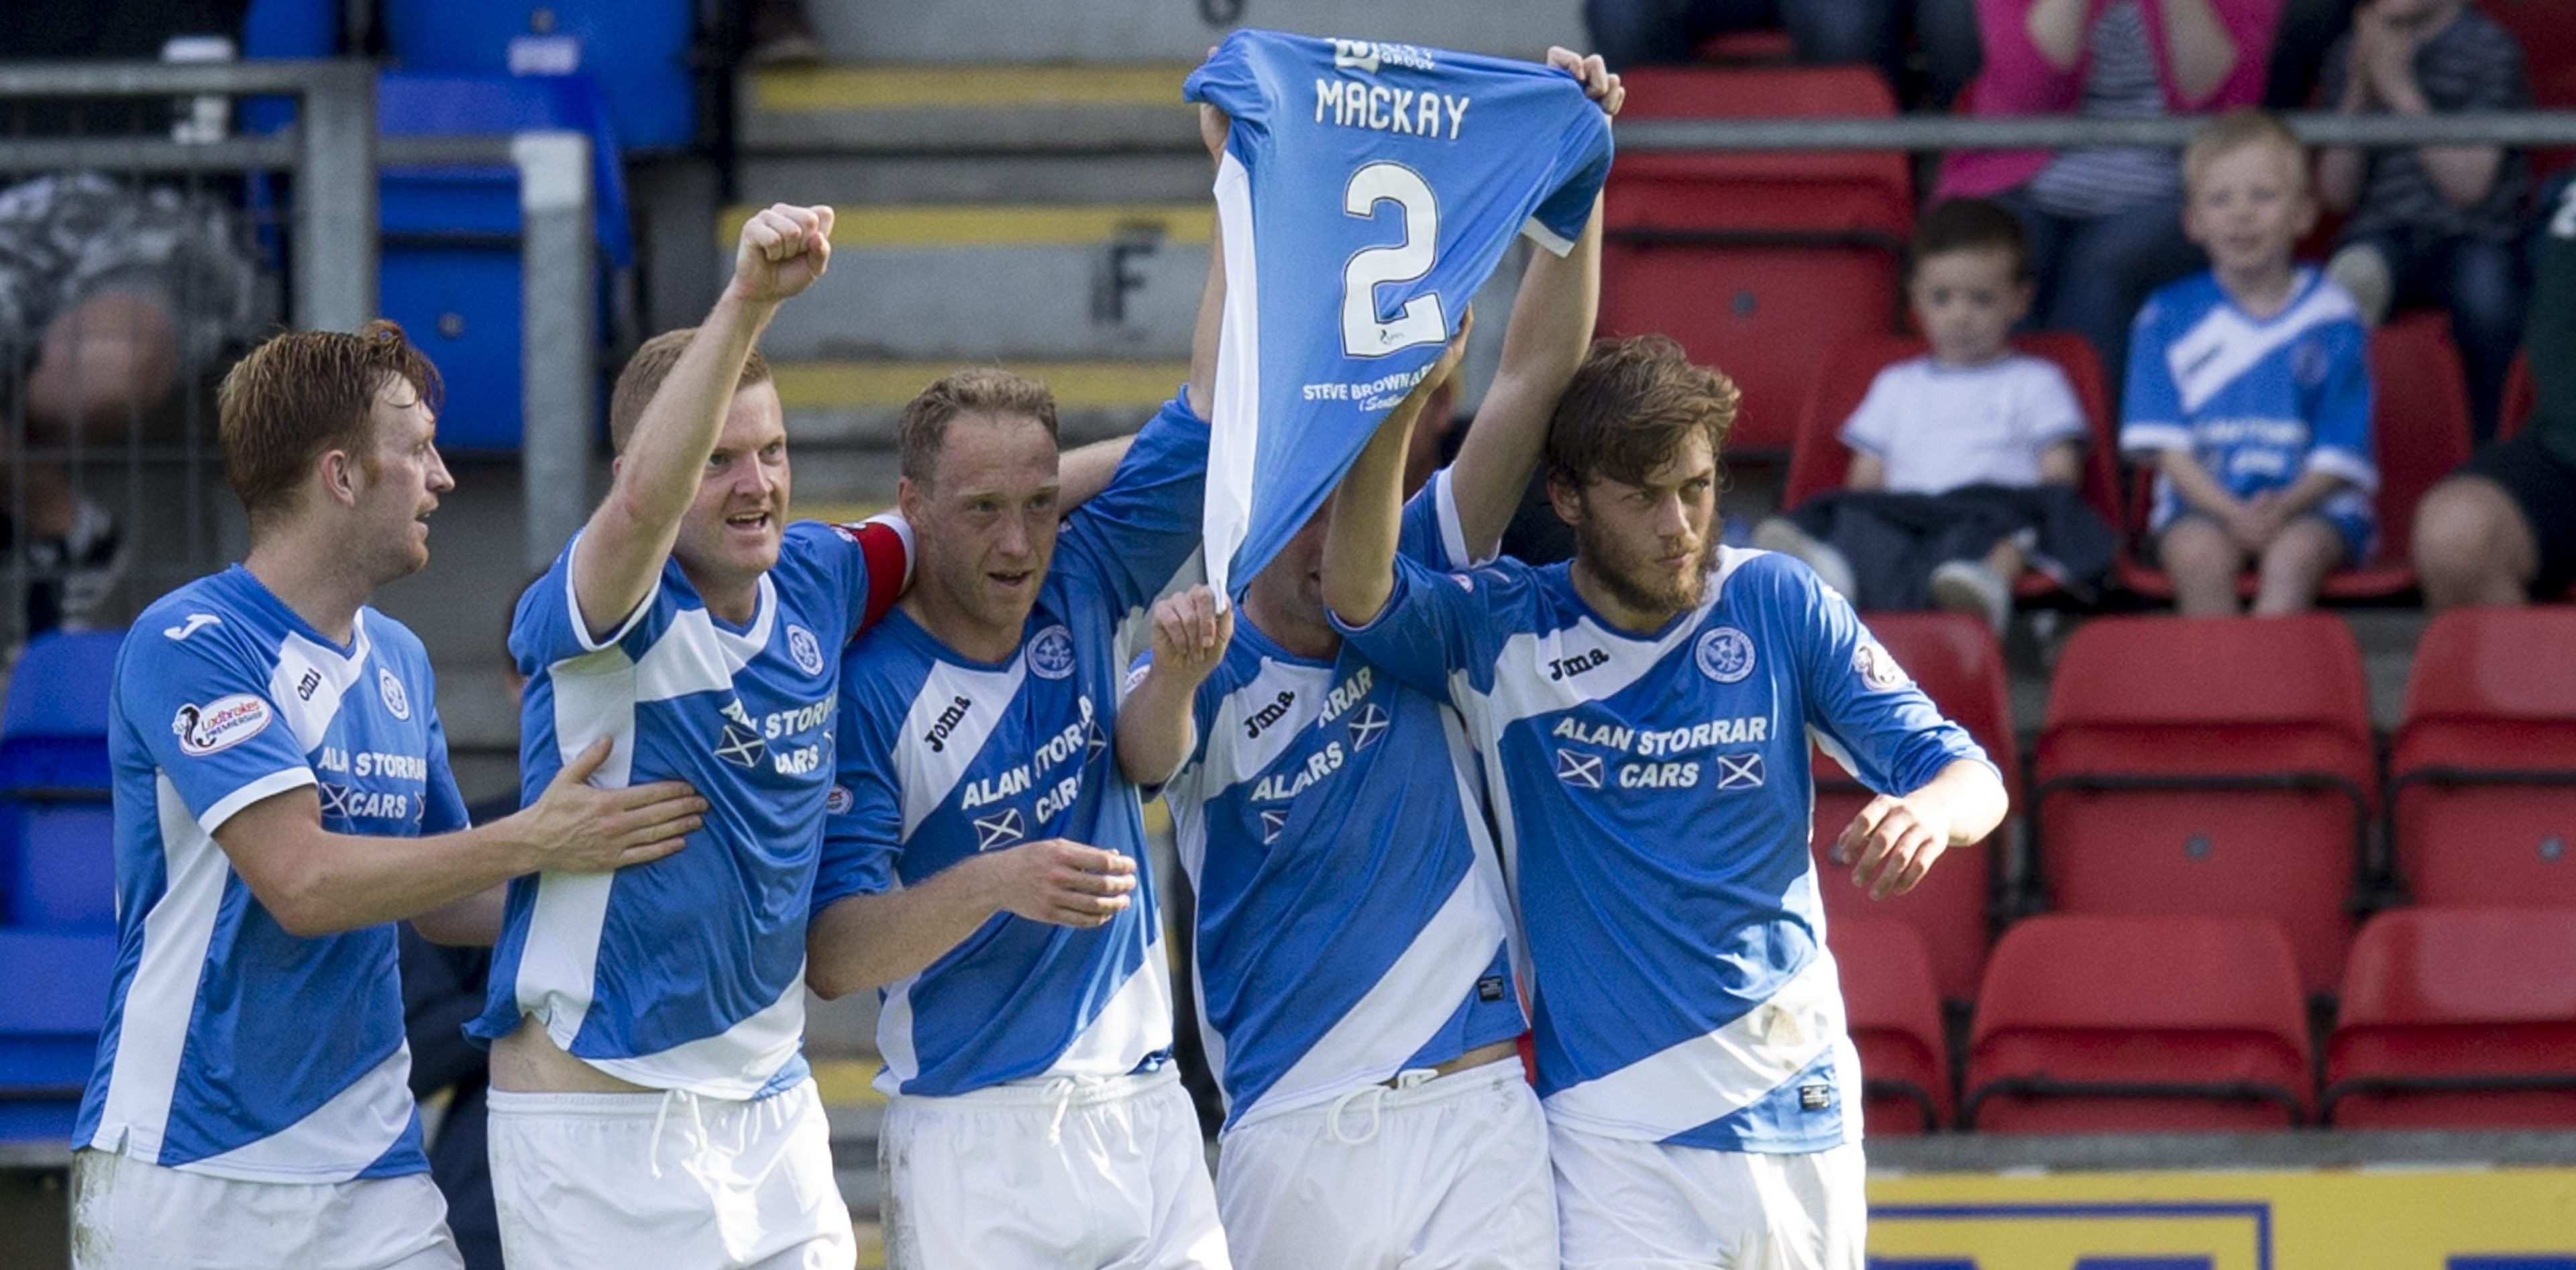 St Johnstone celebrate their weekend winner.